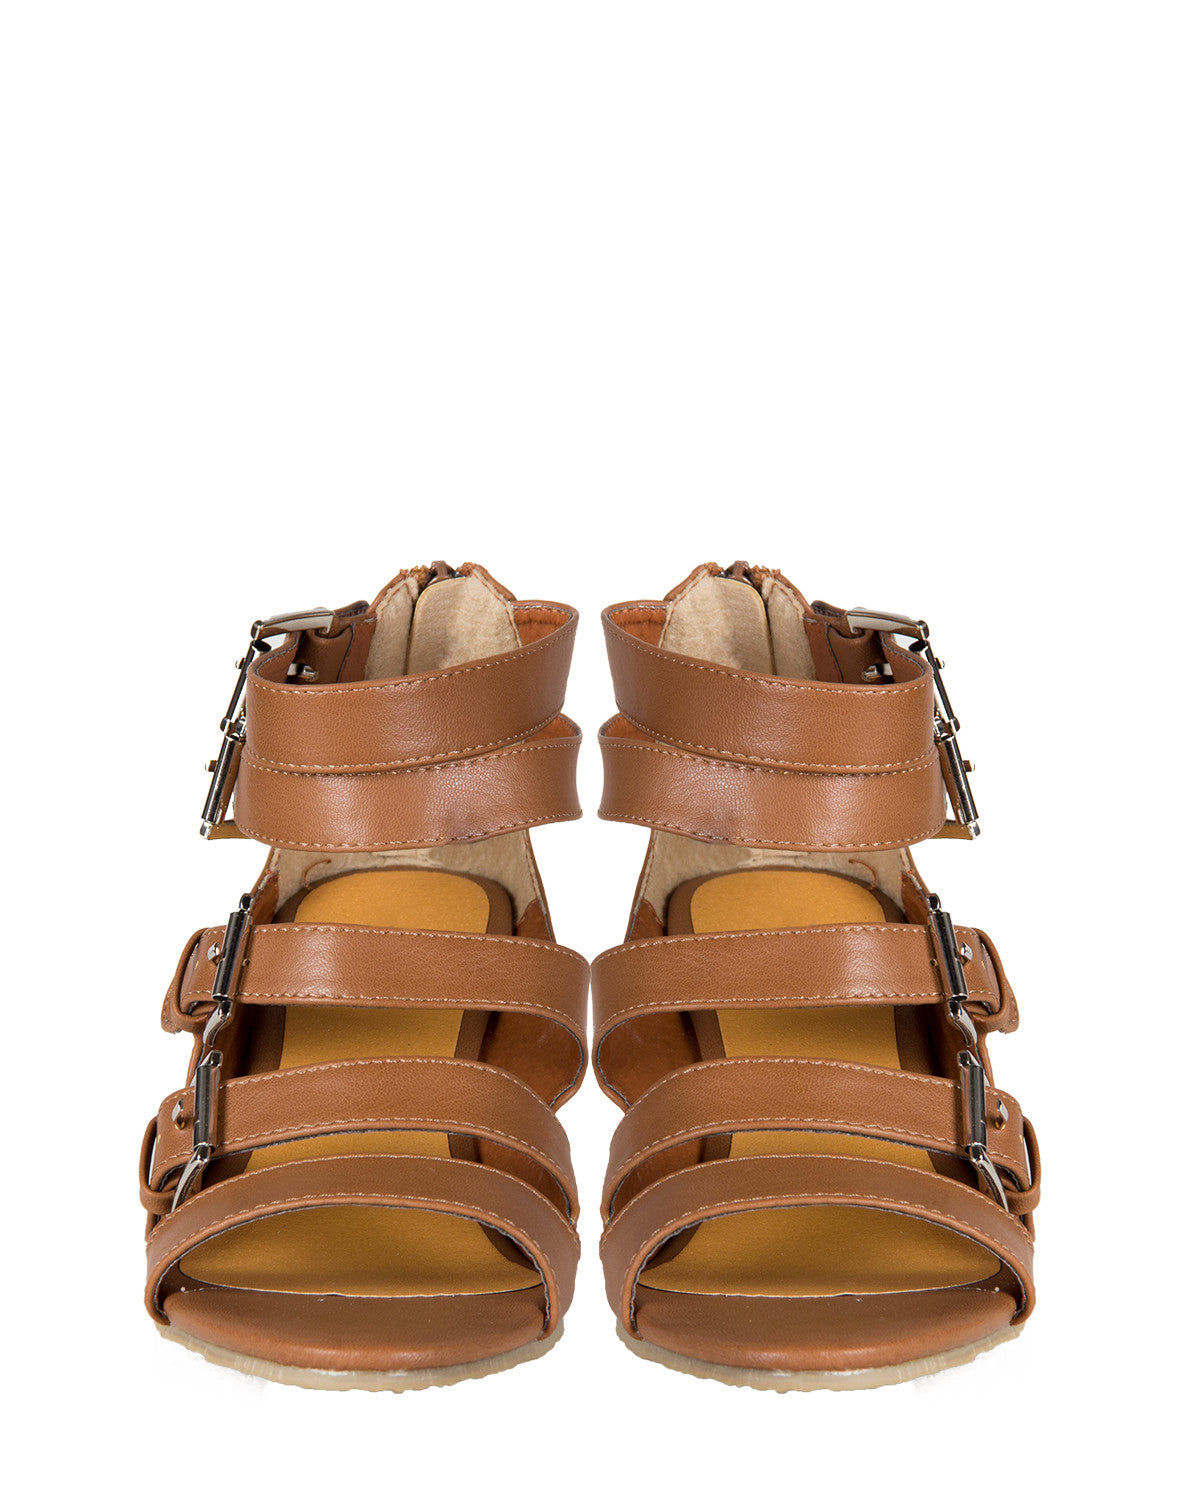 Buckle Down Wedge Sandals - Brown - 8